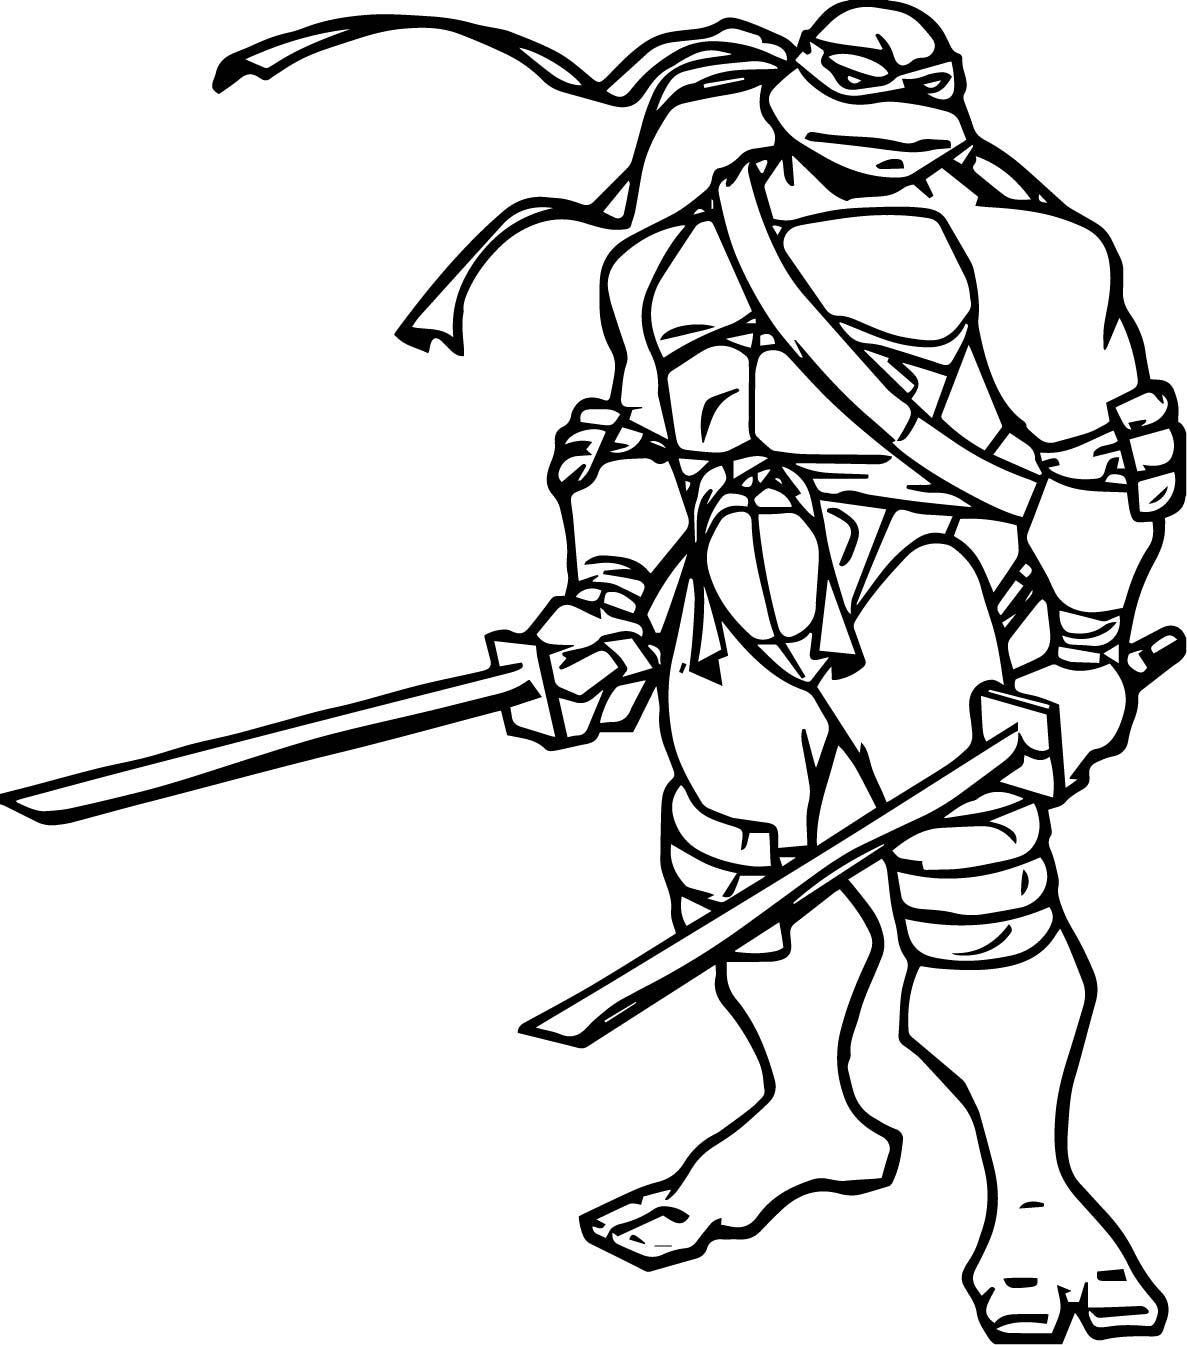 Ninja turtle two blade leonardo coloring page for Coloring pages turtles ninja